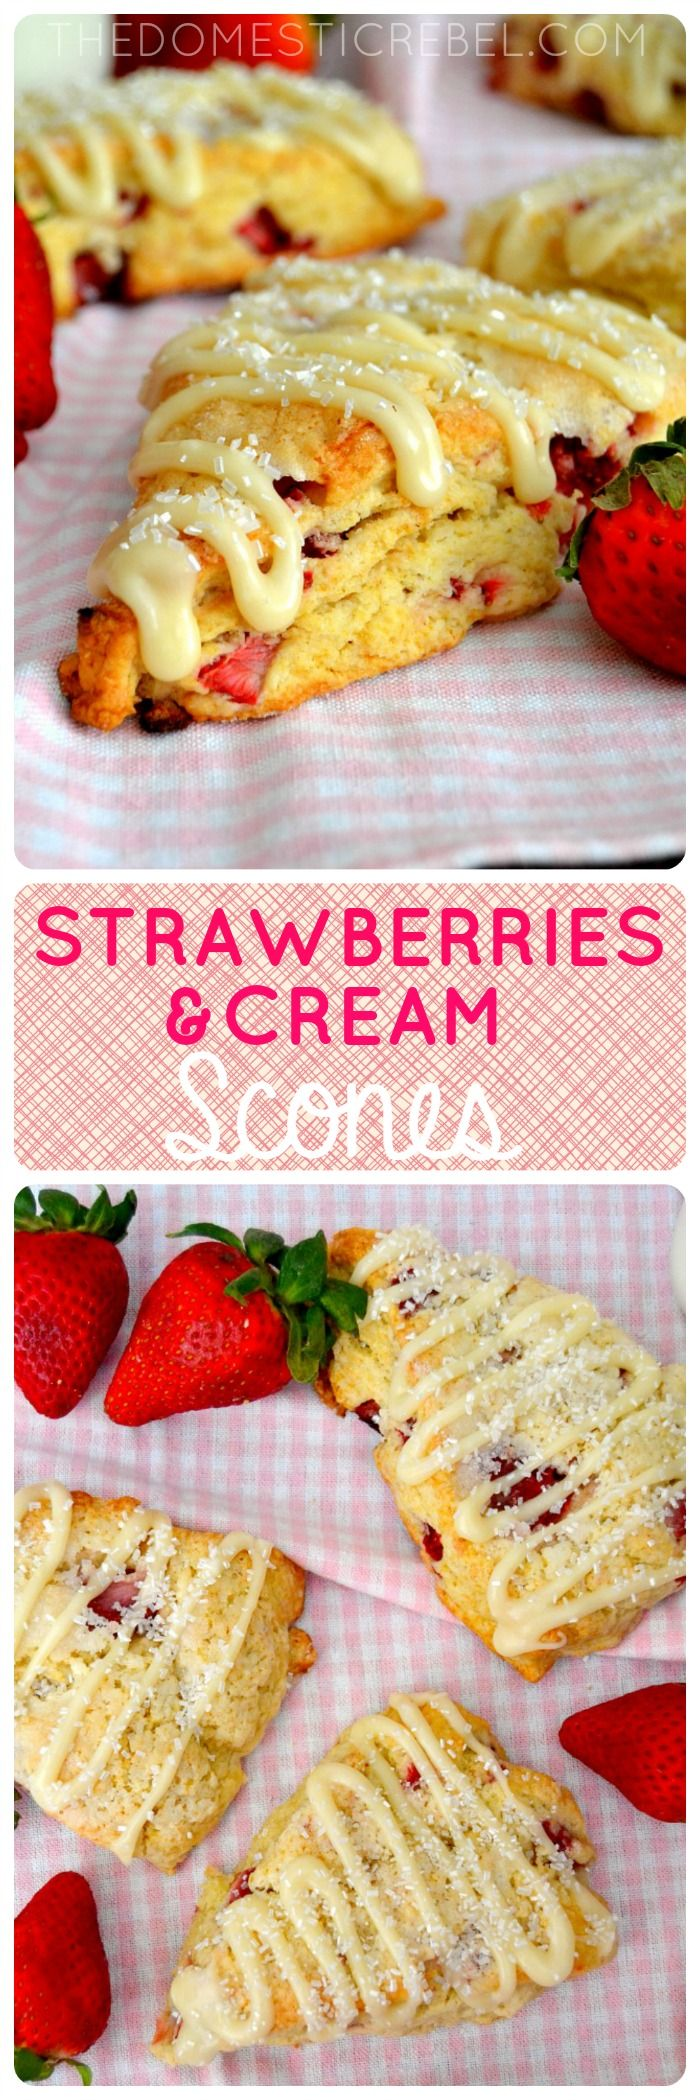 These moist & tender Strawberries & Cream Scones are the perfect weekend breakfast! Comes together in minutes and baked until golden perfection.